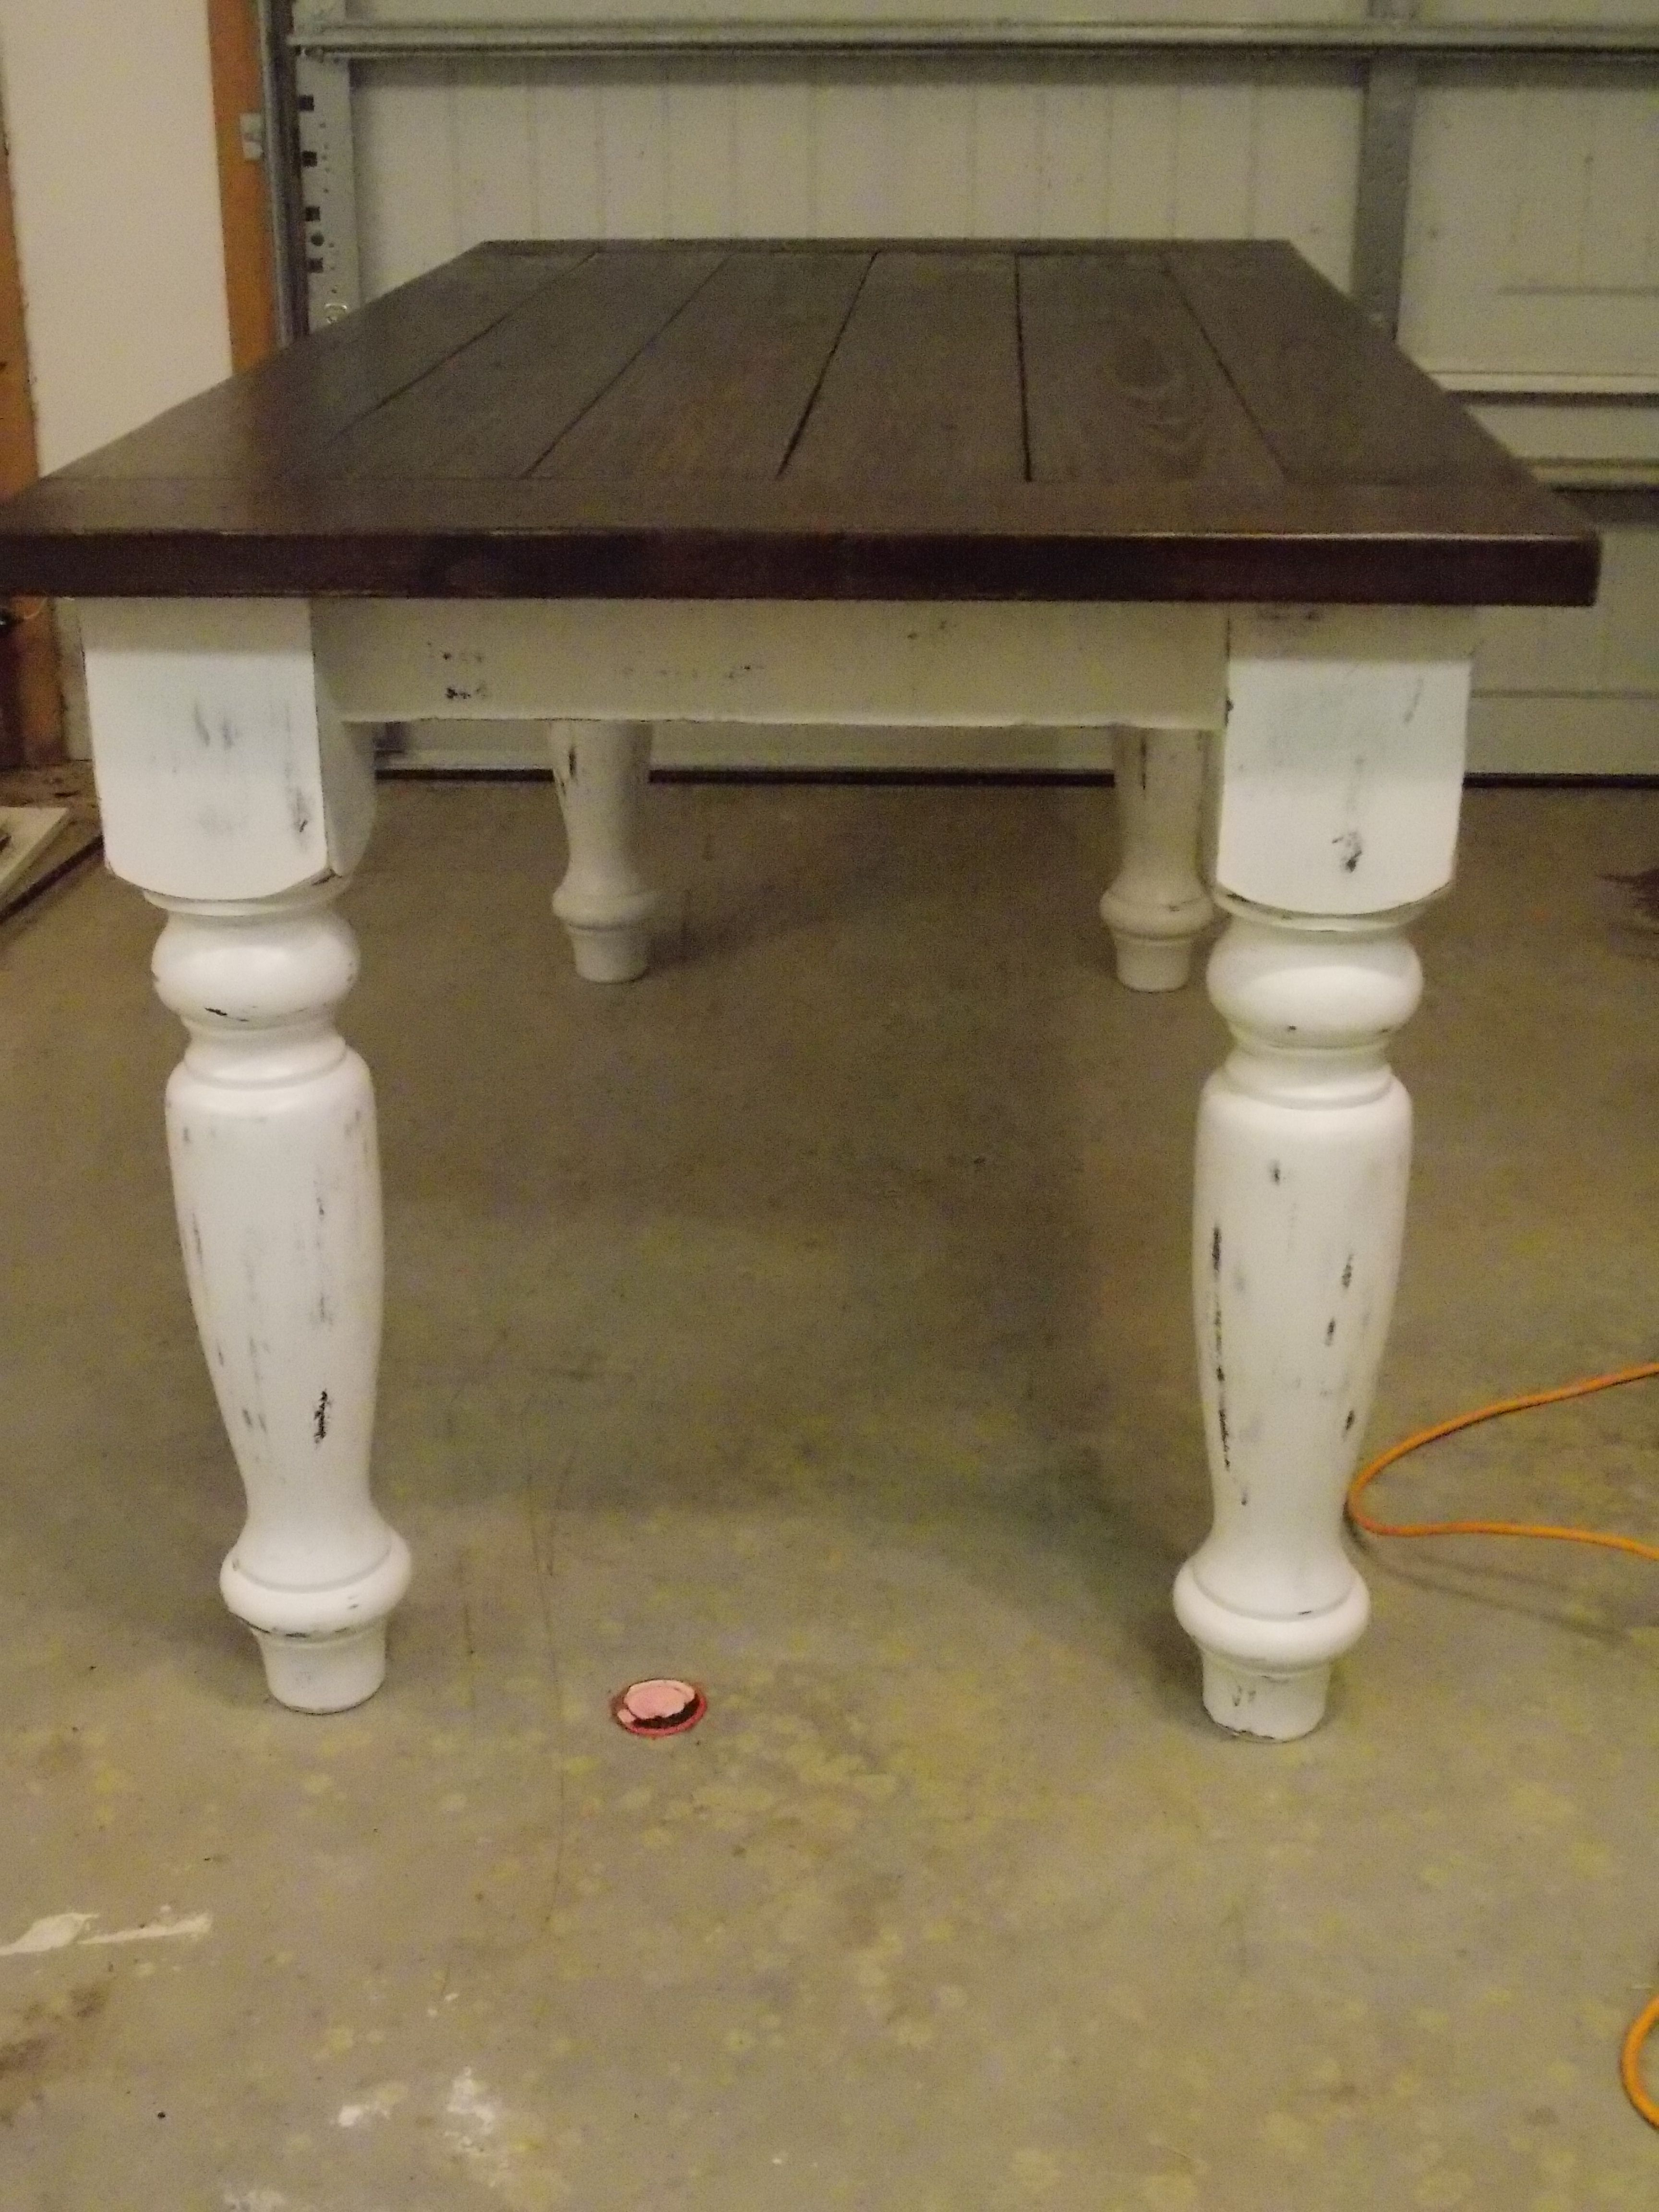 Turned Leg Farmhouse Table Plans Rustic Farmhouse Table Plans | Farmhouse Table , Turned